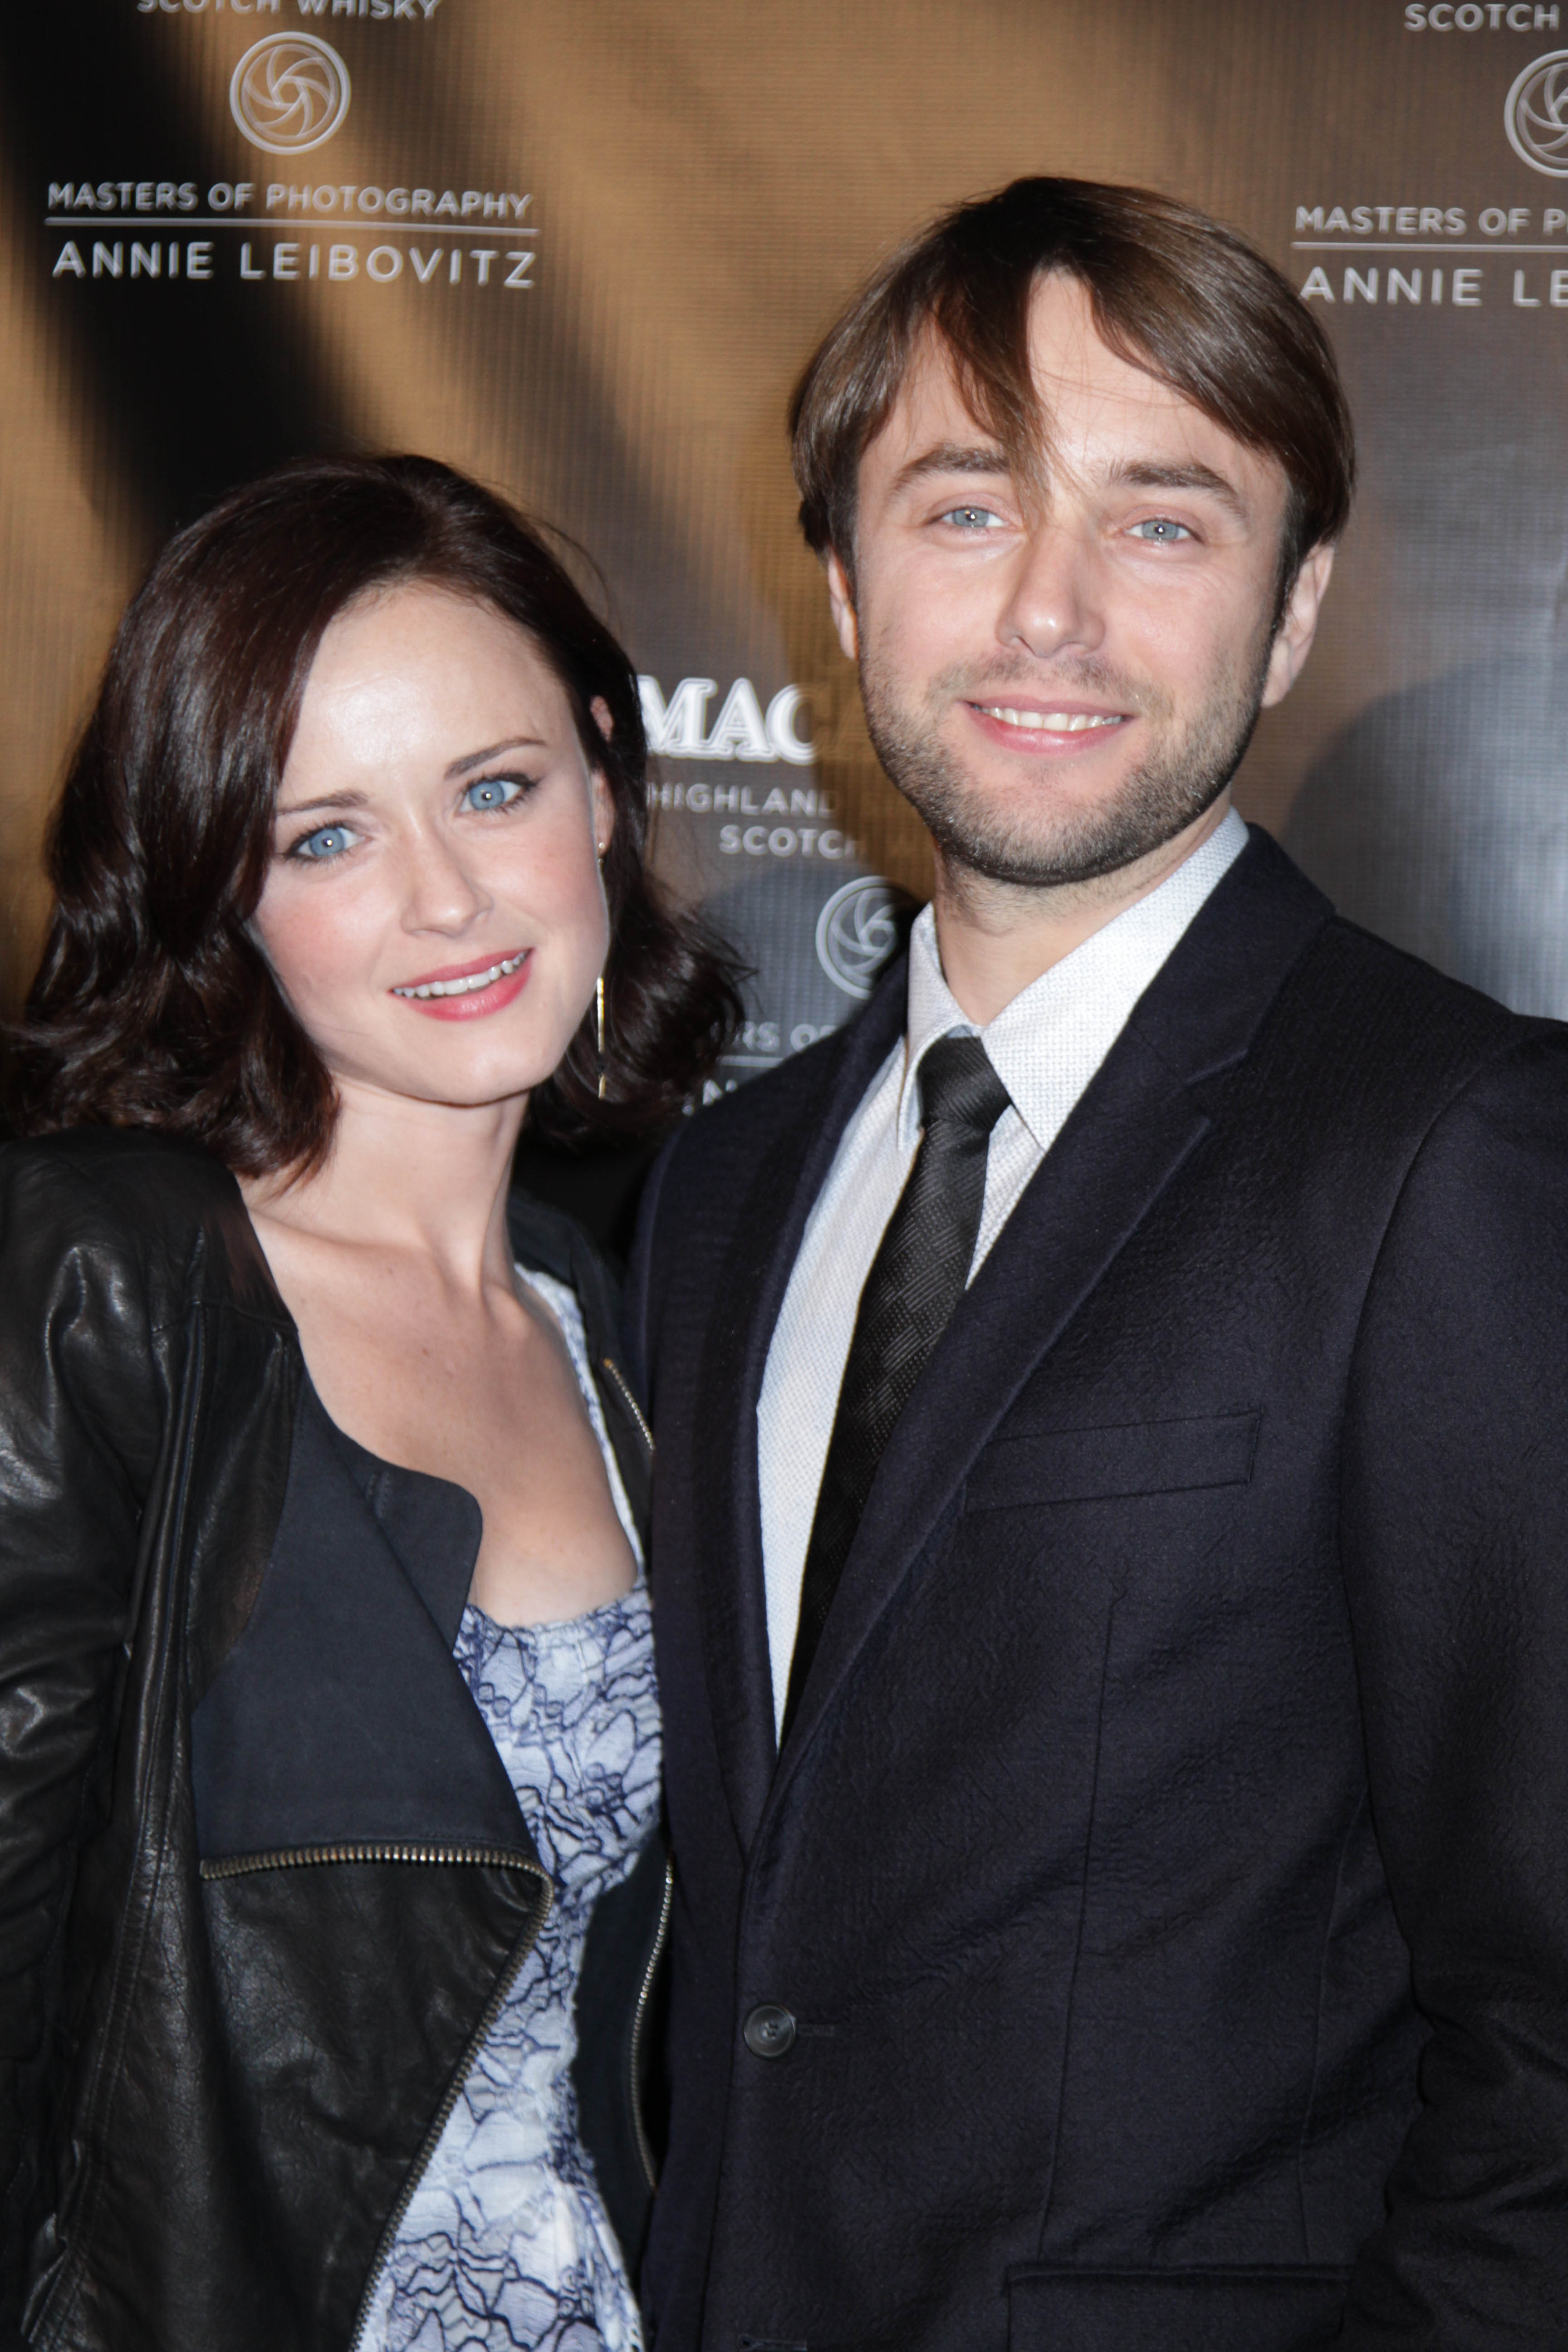 Alexis Bledel - The Macallan Masters Of Photography Series Launch - NYC - 101012_012.jpg